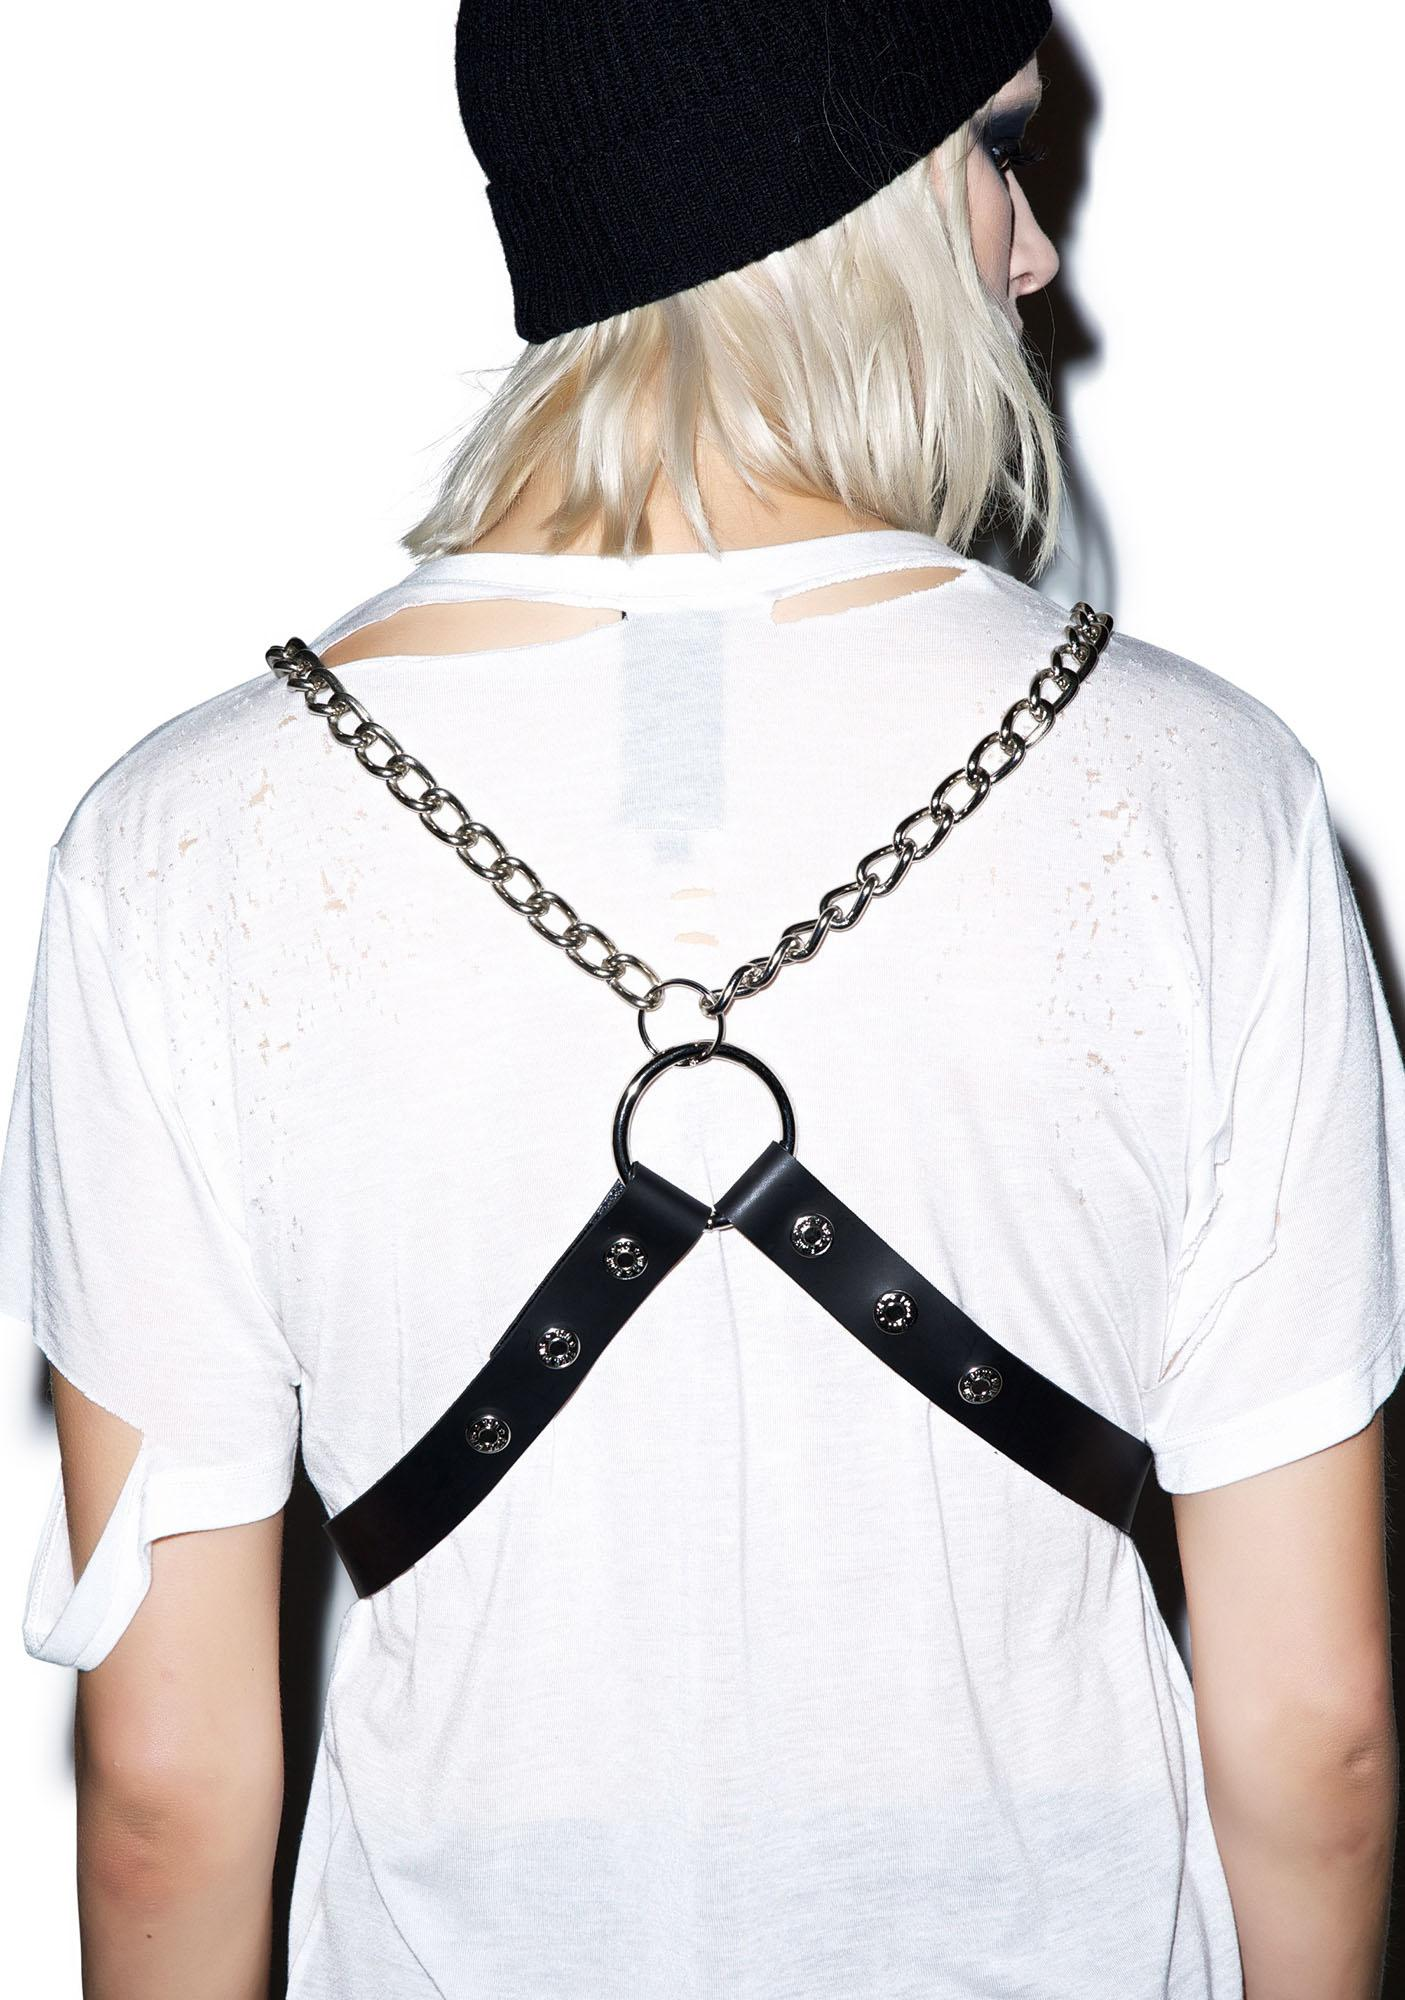 Club Exx Chain Of Command Harness